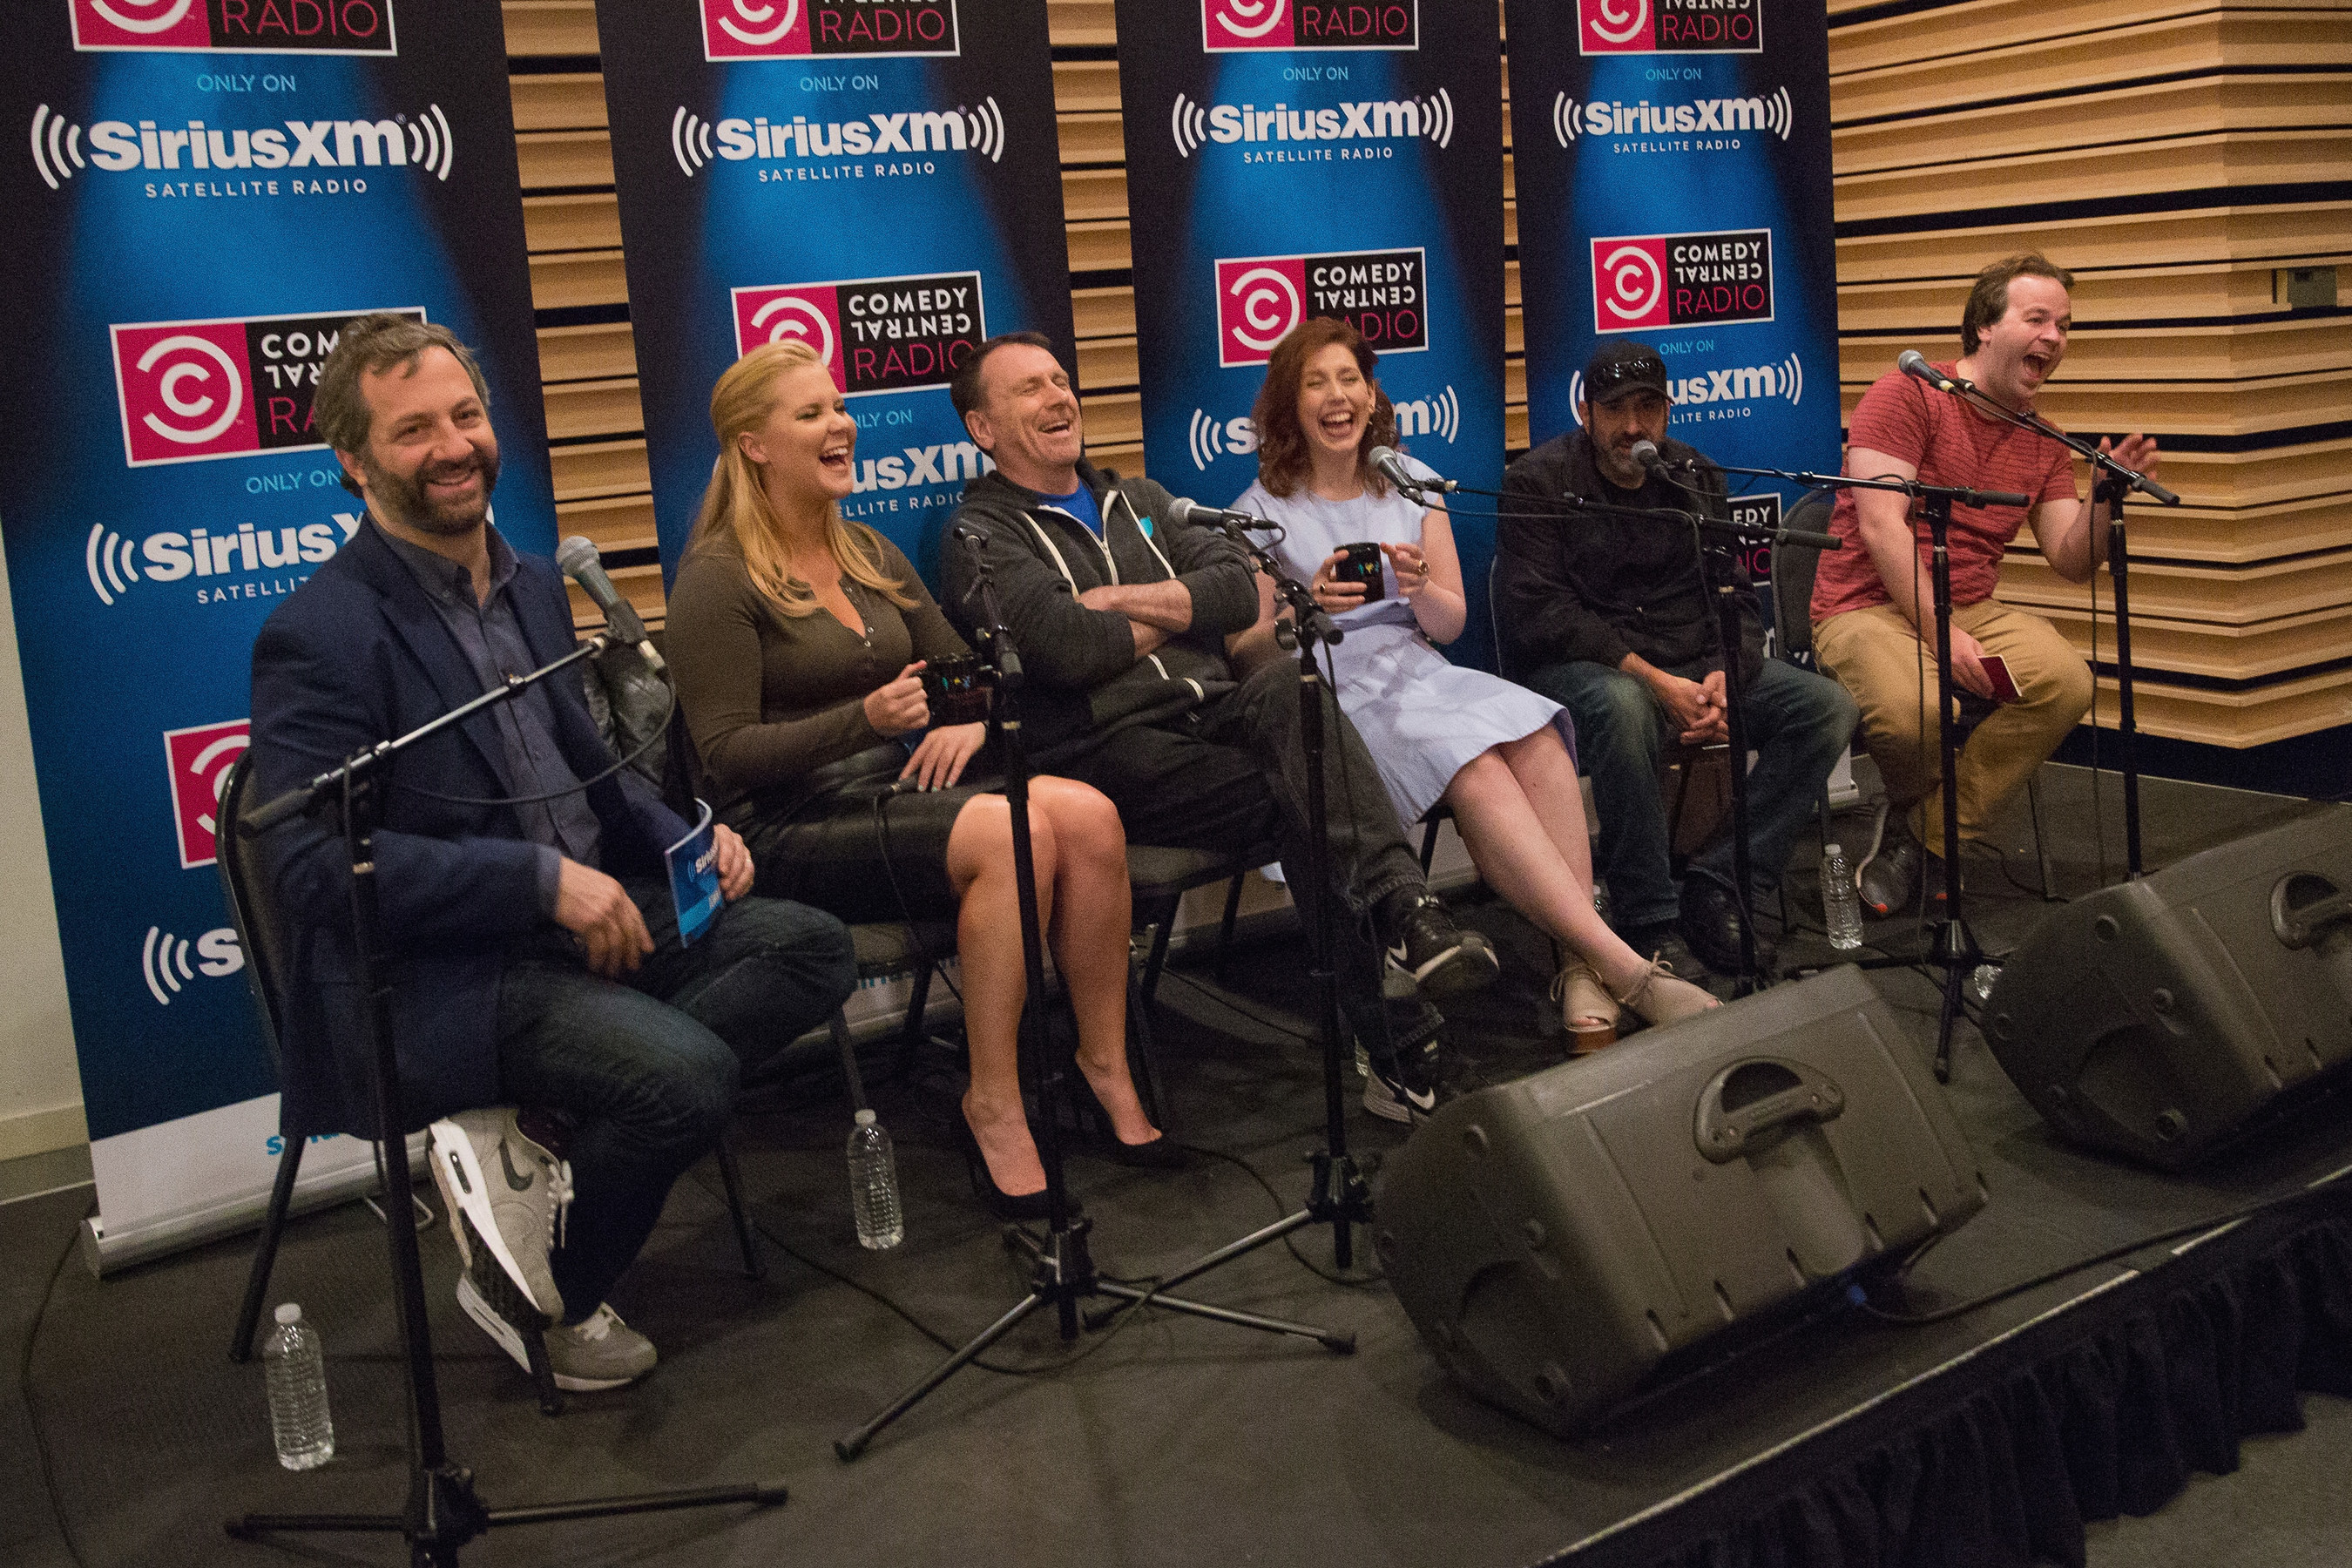 SiriusXM Presents the 'Trainwreck' Takeover on SiriusXM's Comedy Central Radio During July 4th Weekend